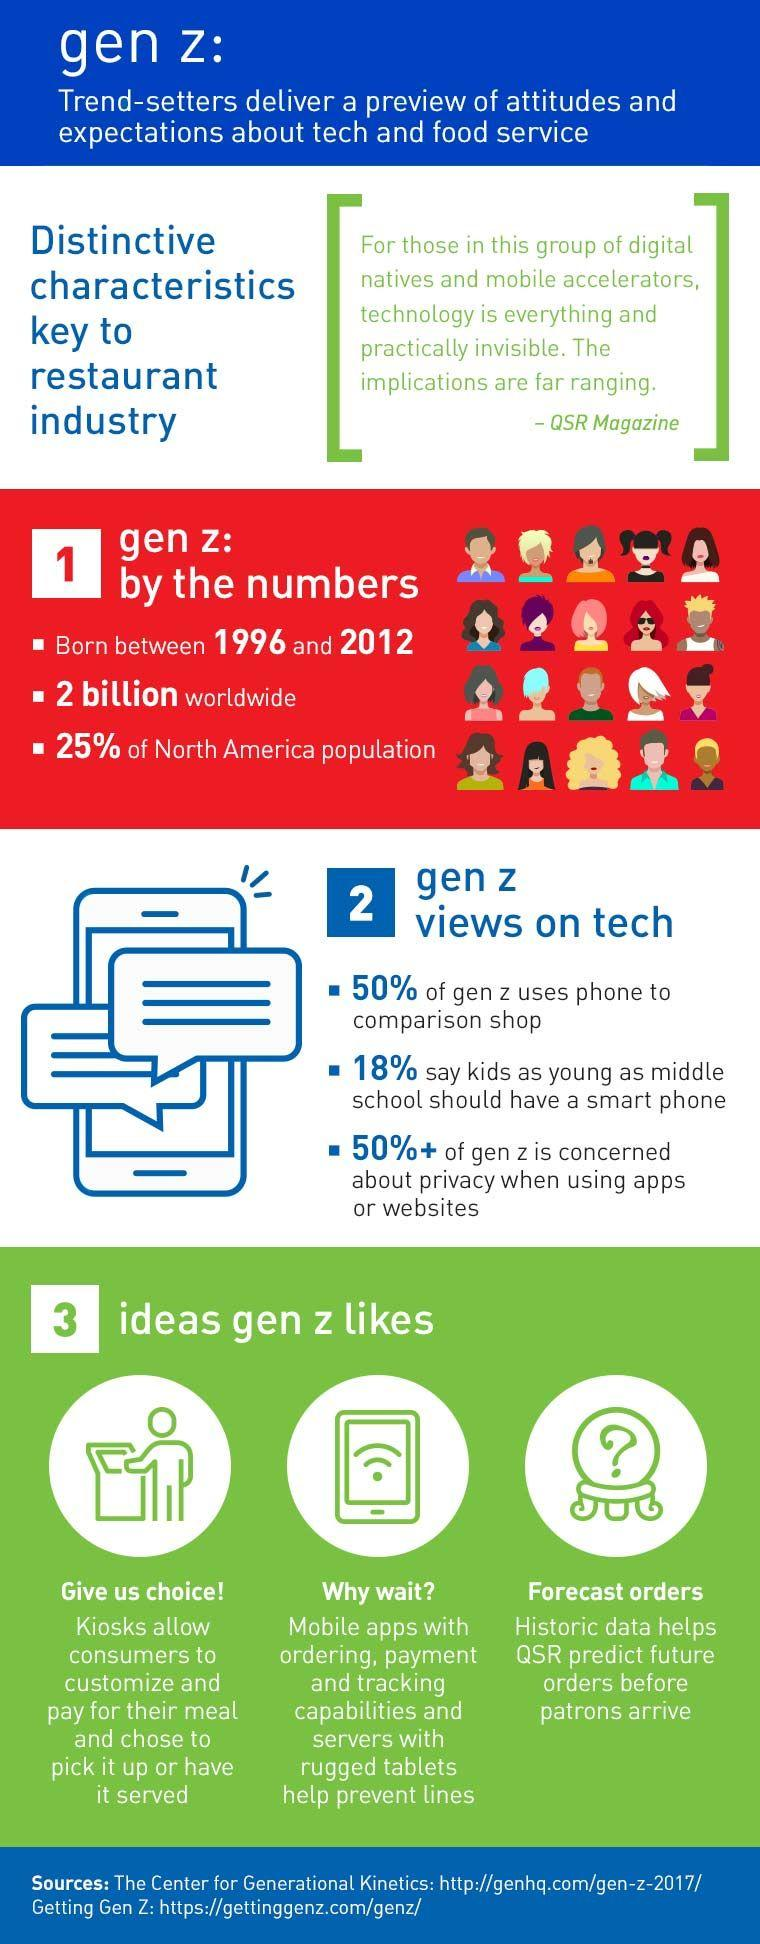 Behaviors of Gen Z